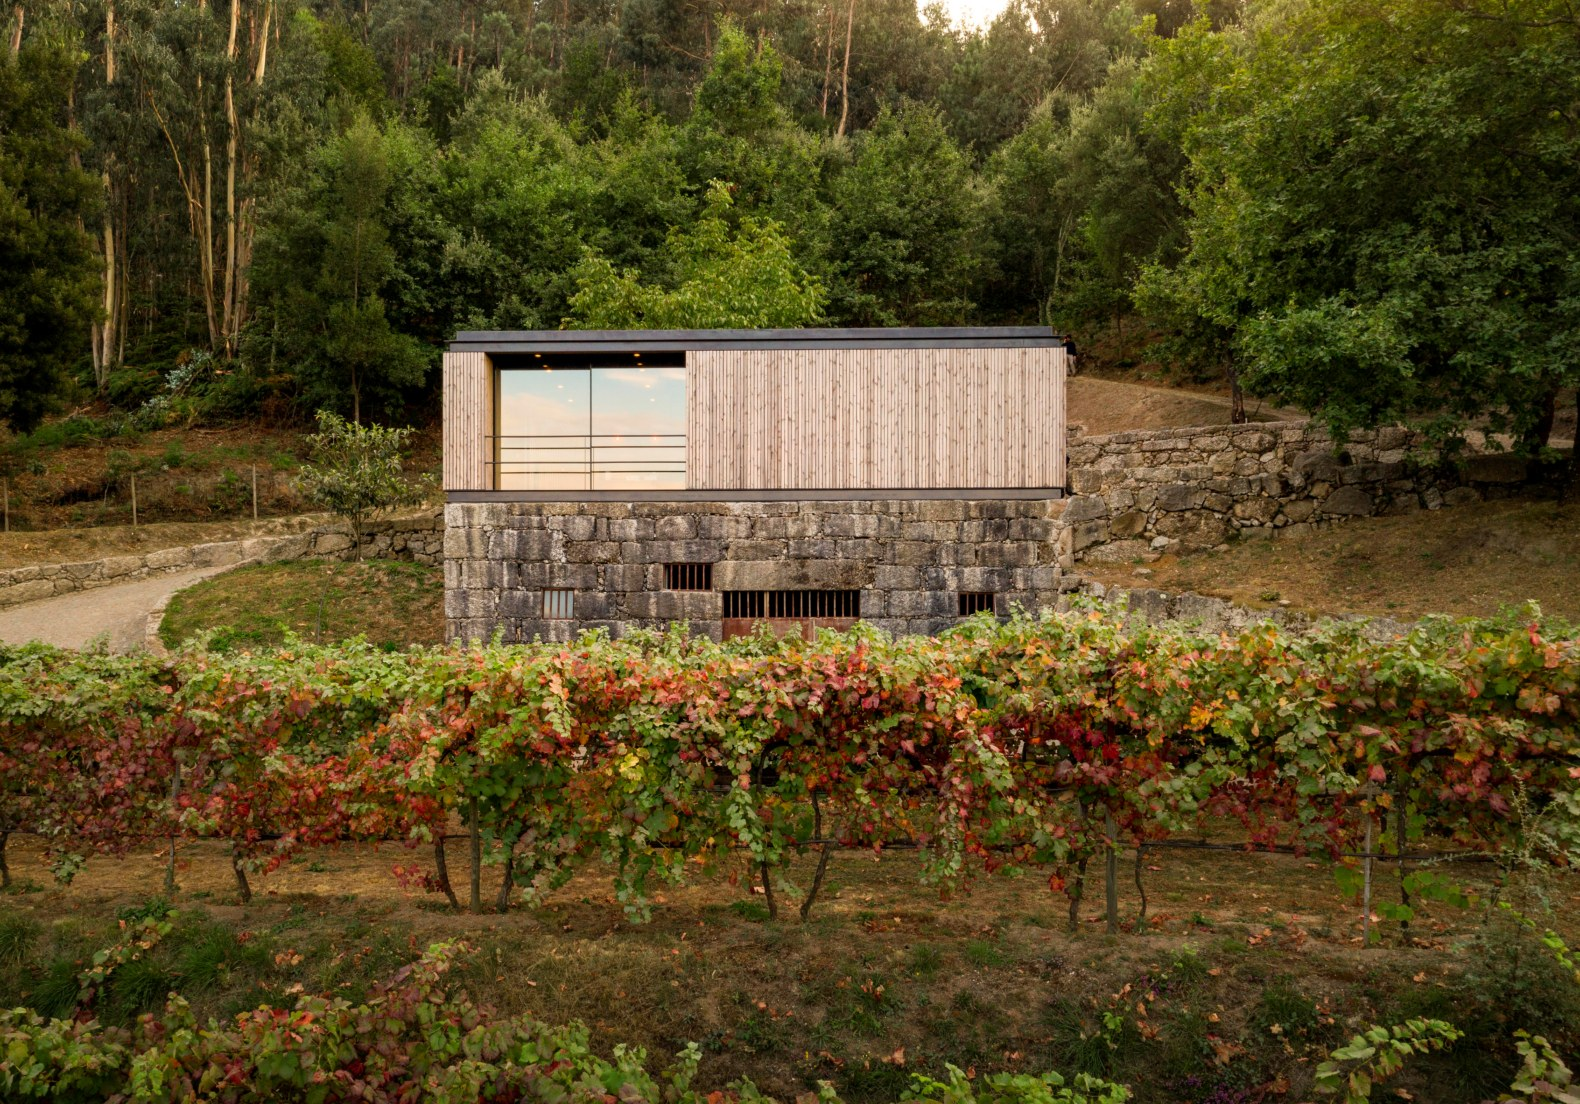 A micro home with a green roof sits atop a granite wine cellar in rural Portugal